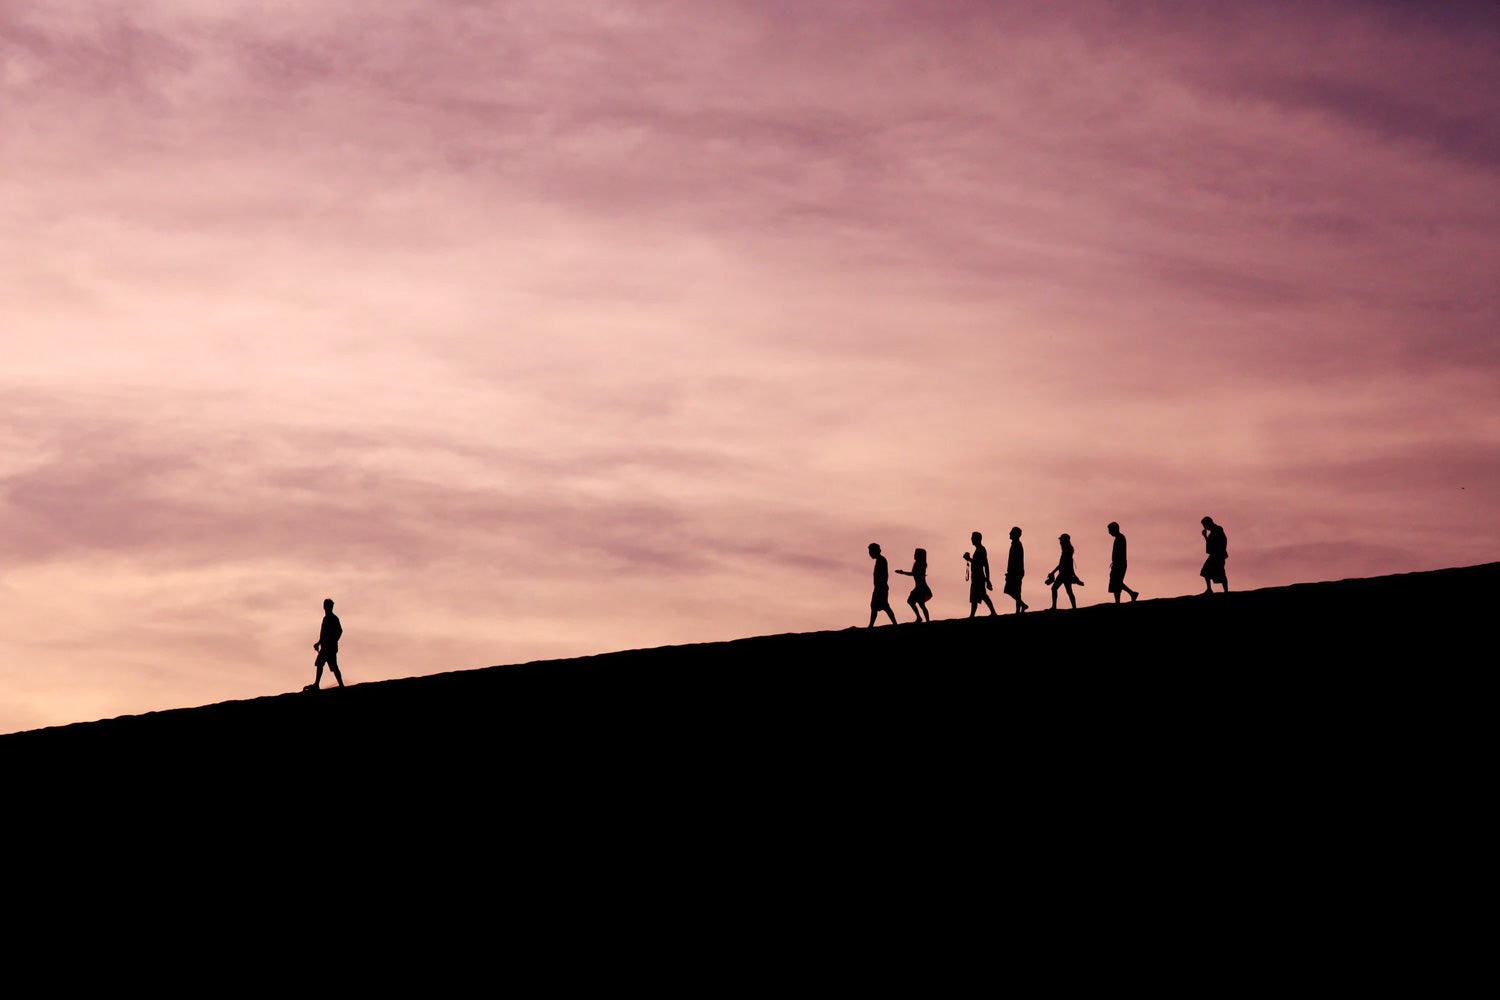 A man leading people silhouette